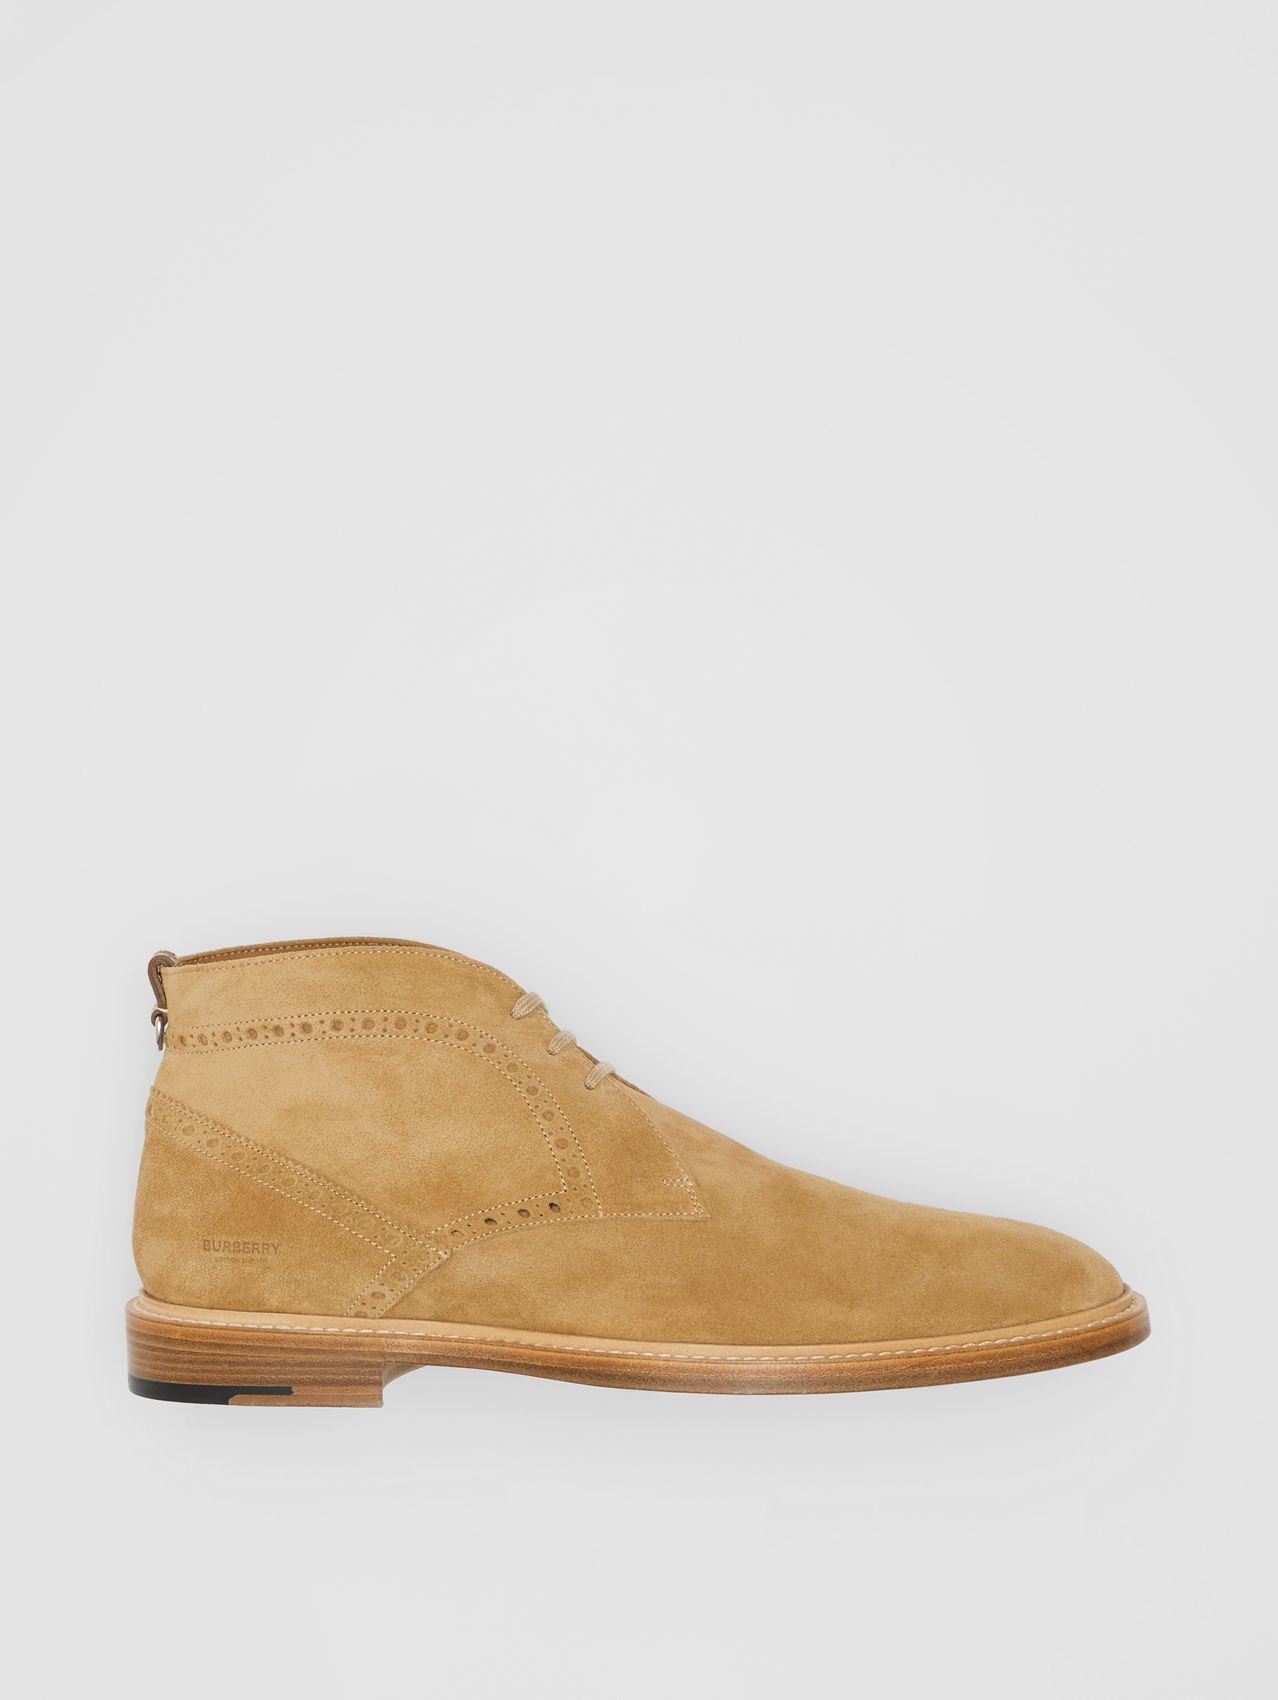 Brogue Detail Suede Boots in Sandy Beige